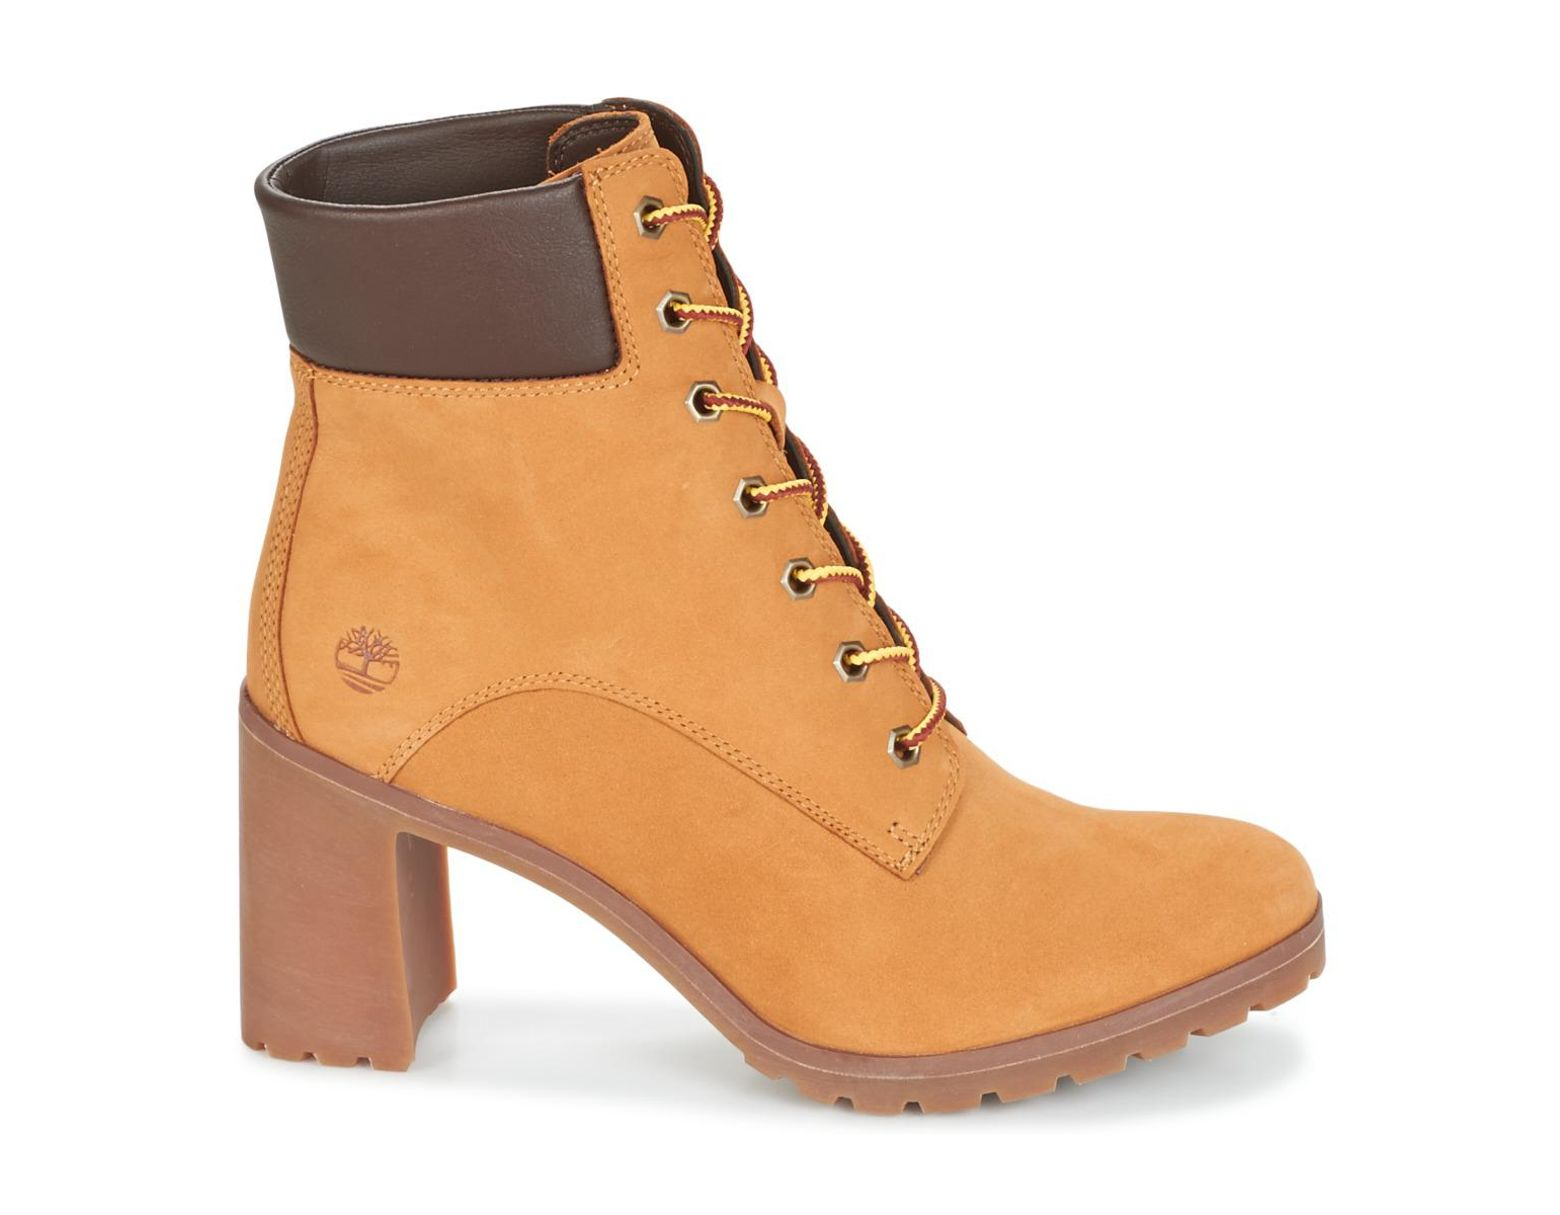 fd4f305c7a3 Timberland Allington 6in Lace Up Women's Low Ankle Boots In Brown in Brown  - Lyst